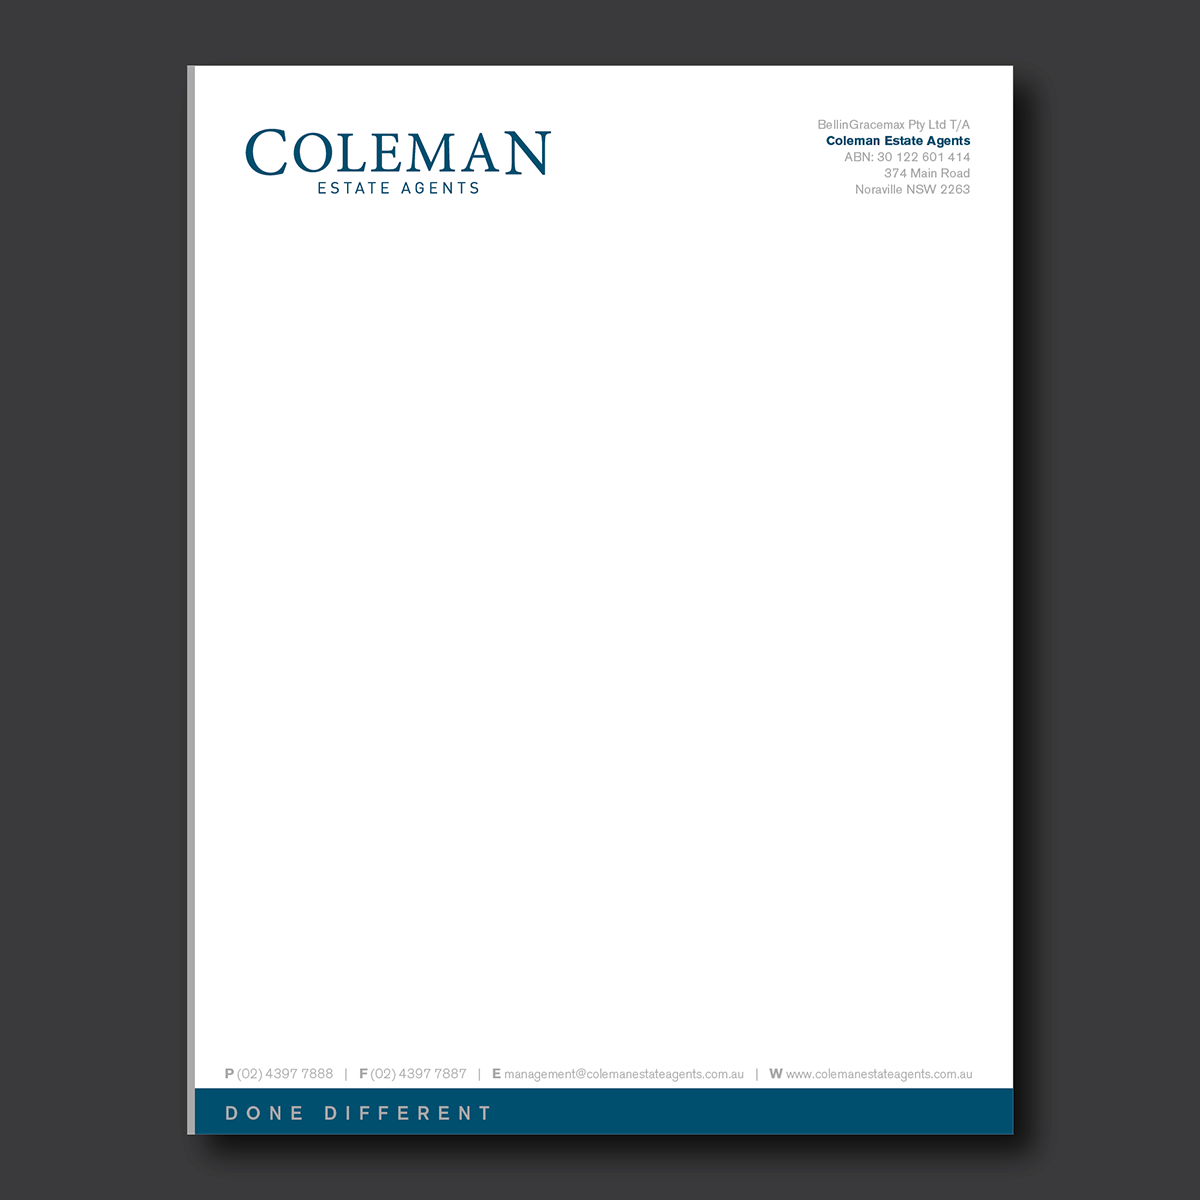 Writing German Letters For Business Bright Hub Education Letterhead Design For Coleman Estate Agents By Dotnot